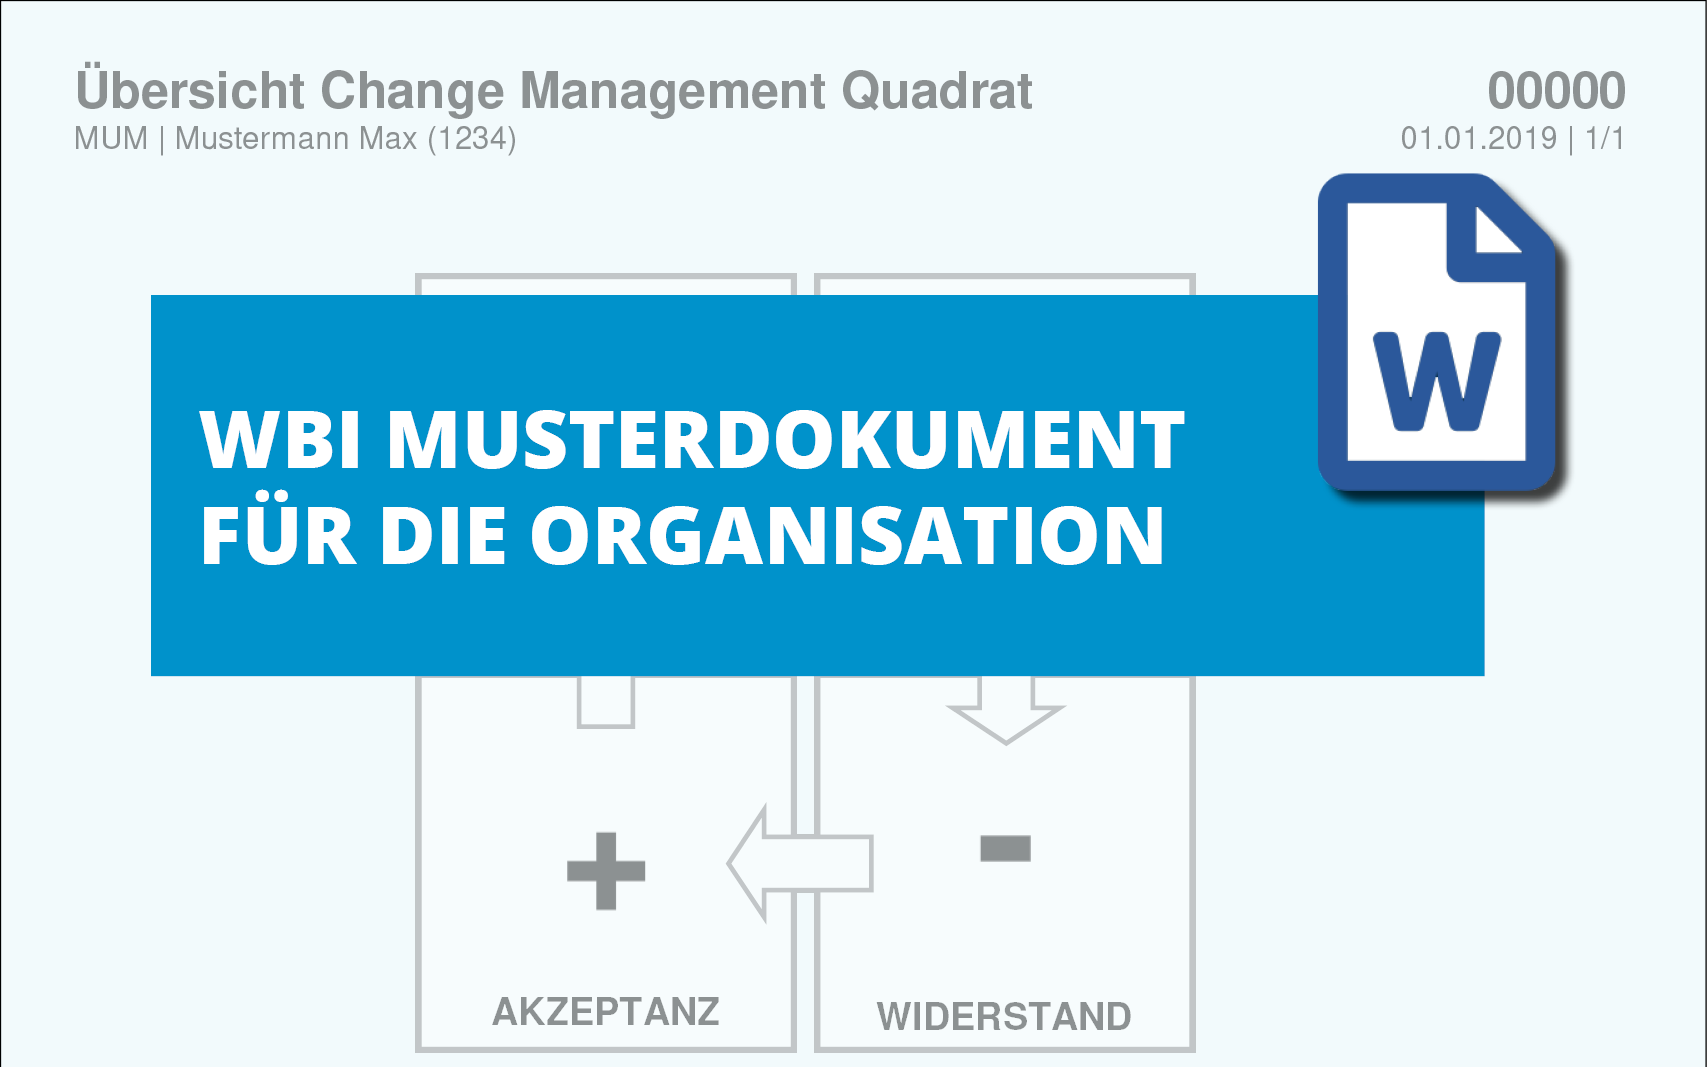 uebersicht-change-management-quadrat